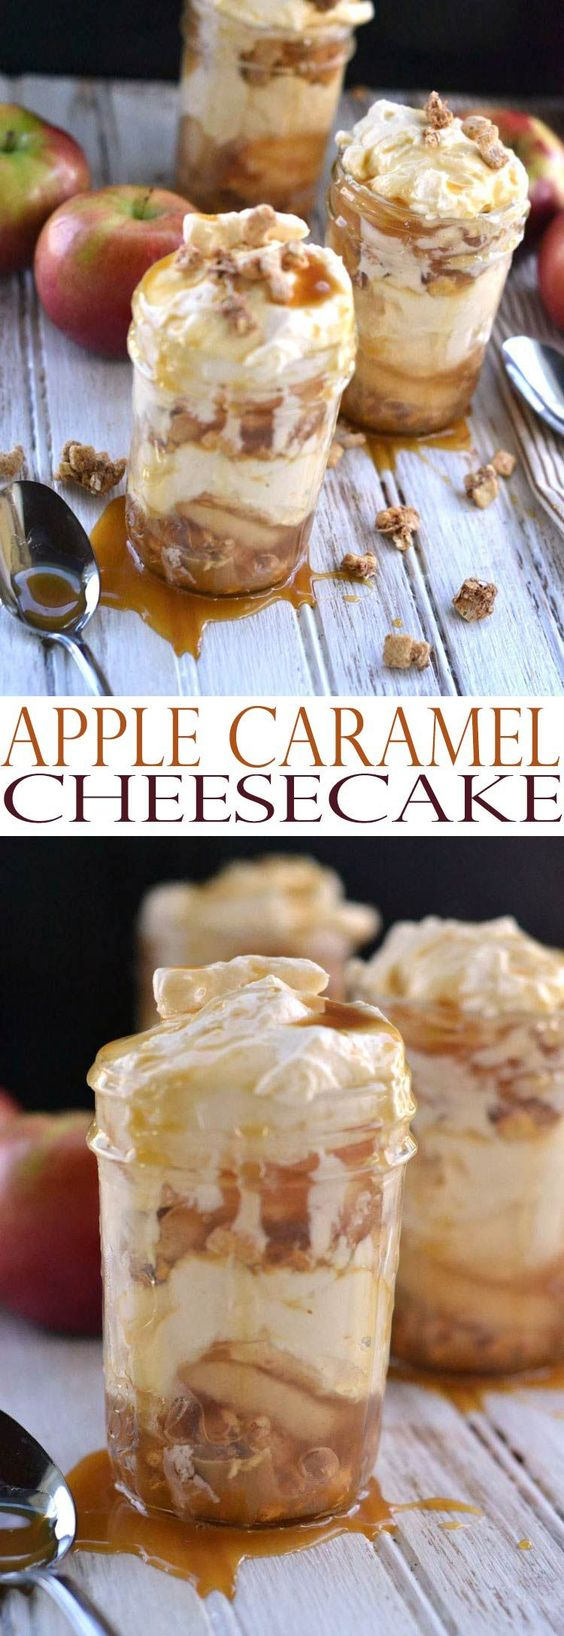 Thanksgiving Desserts: Apple Caramel Cheesecake Recipe